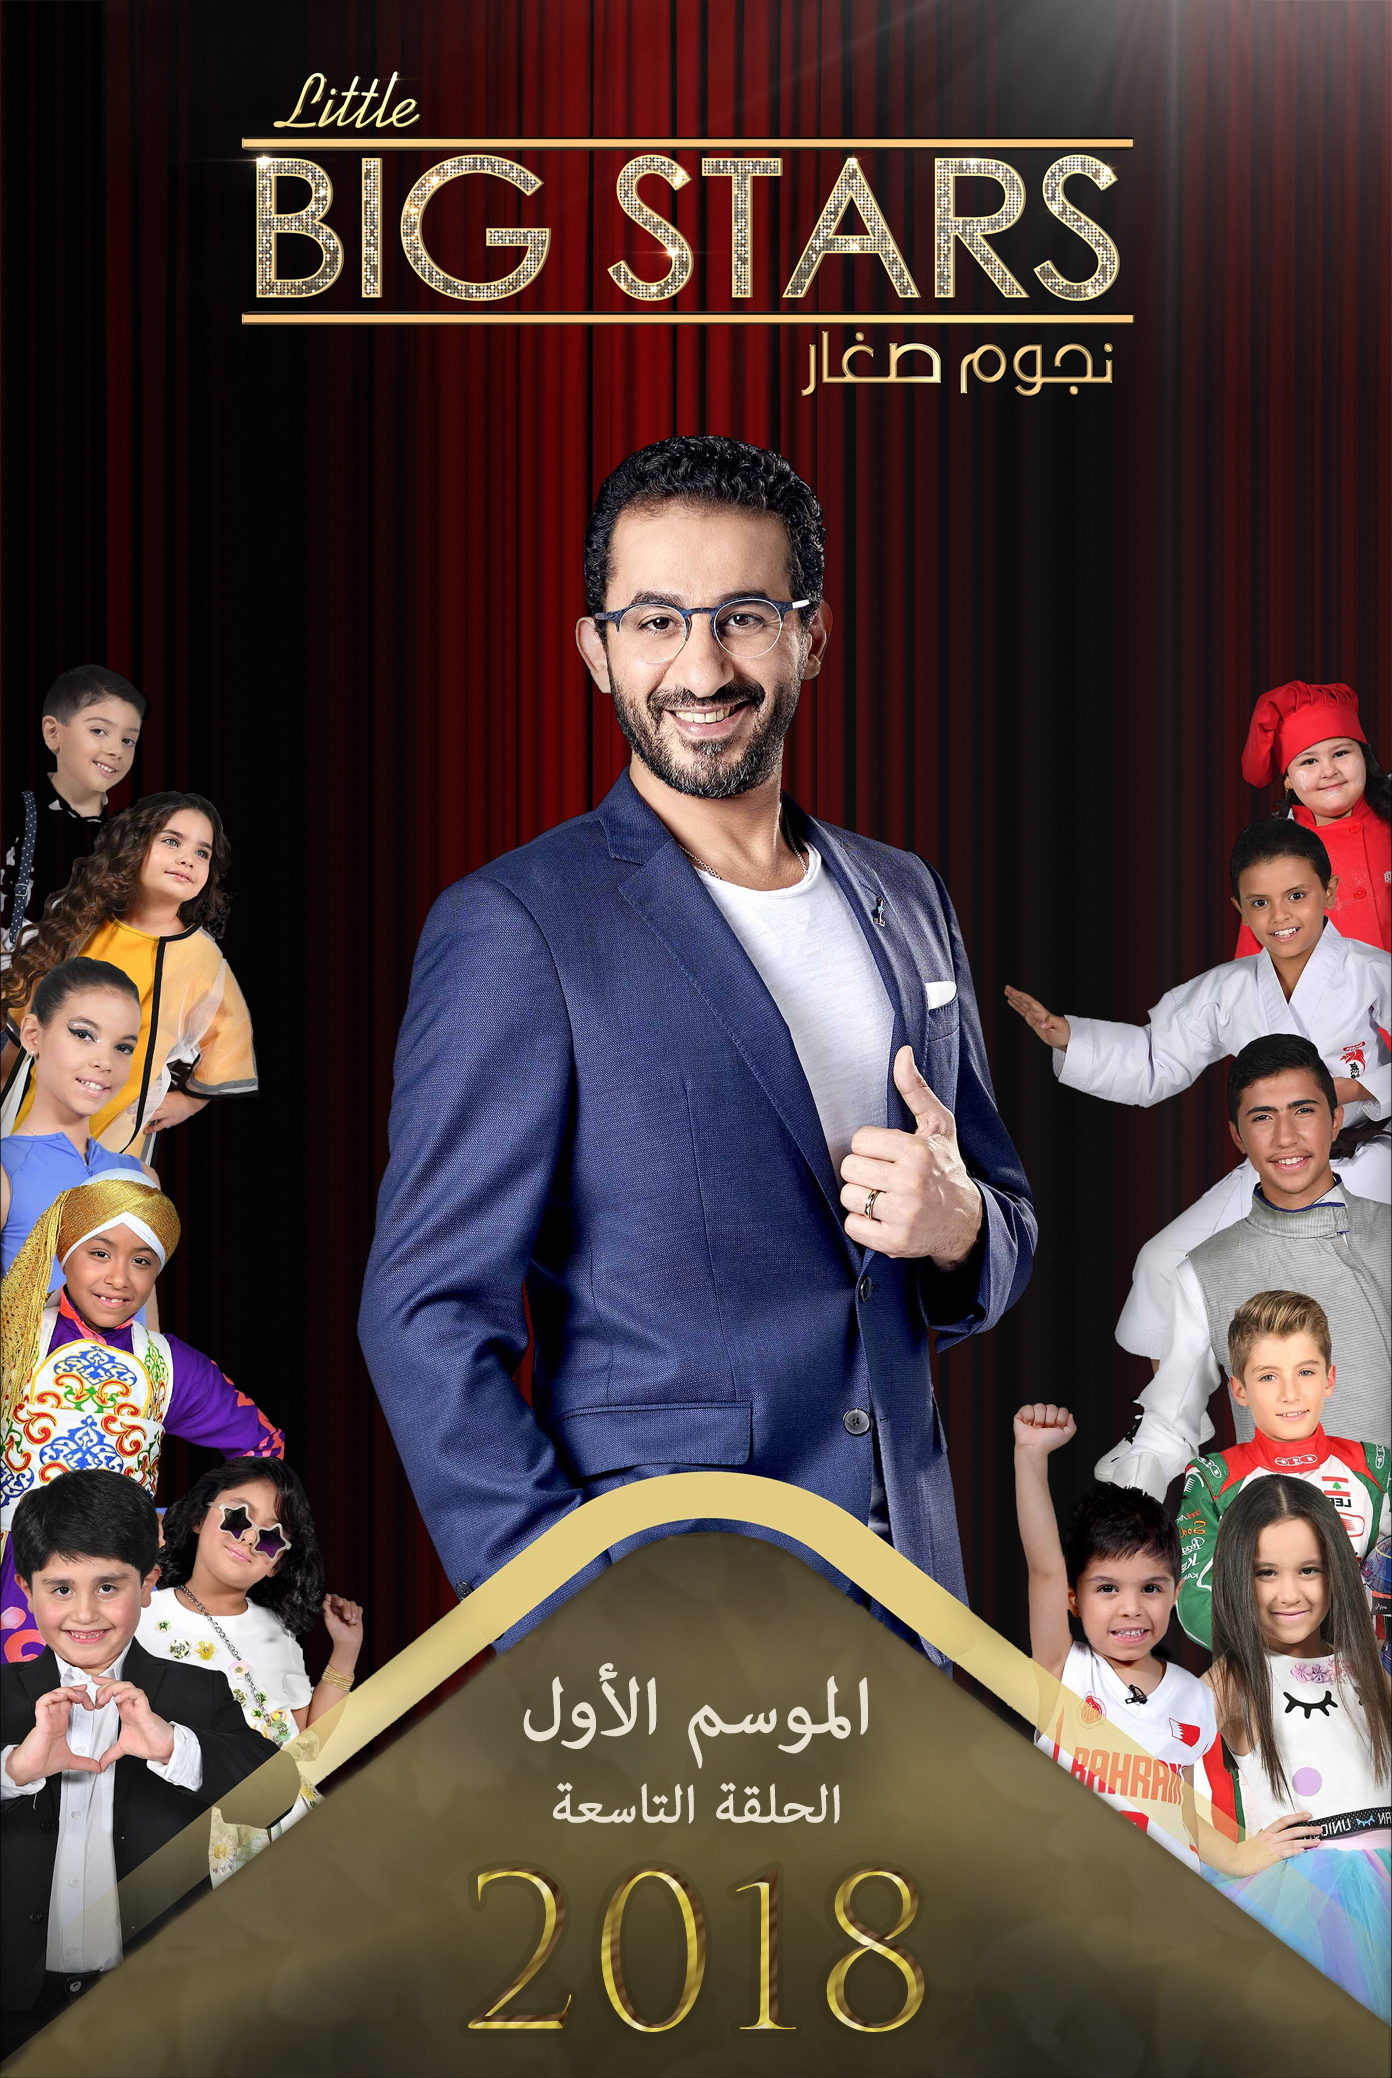 نجوم صغار [م1][ح9][Web DL][720p][2018][Little Big Stars]